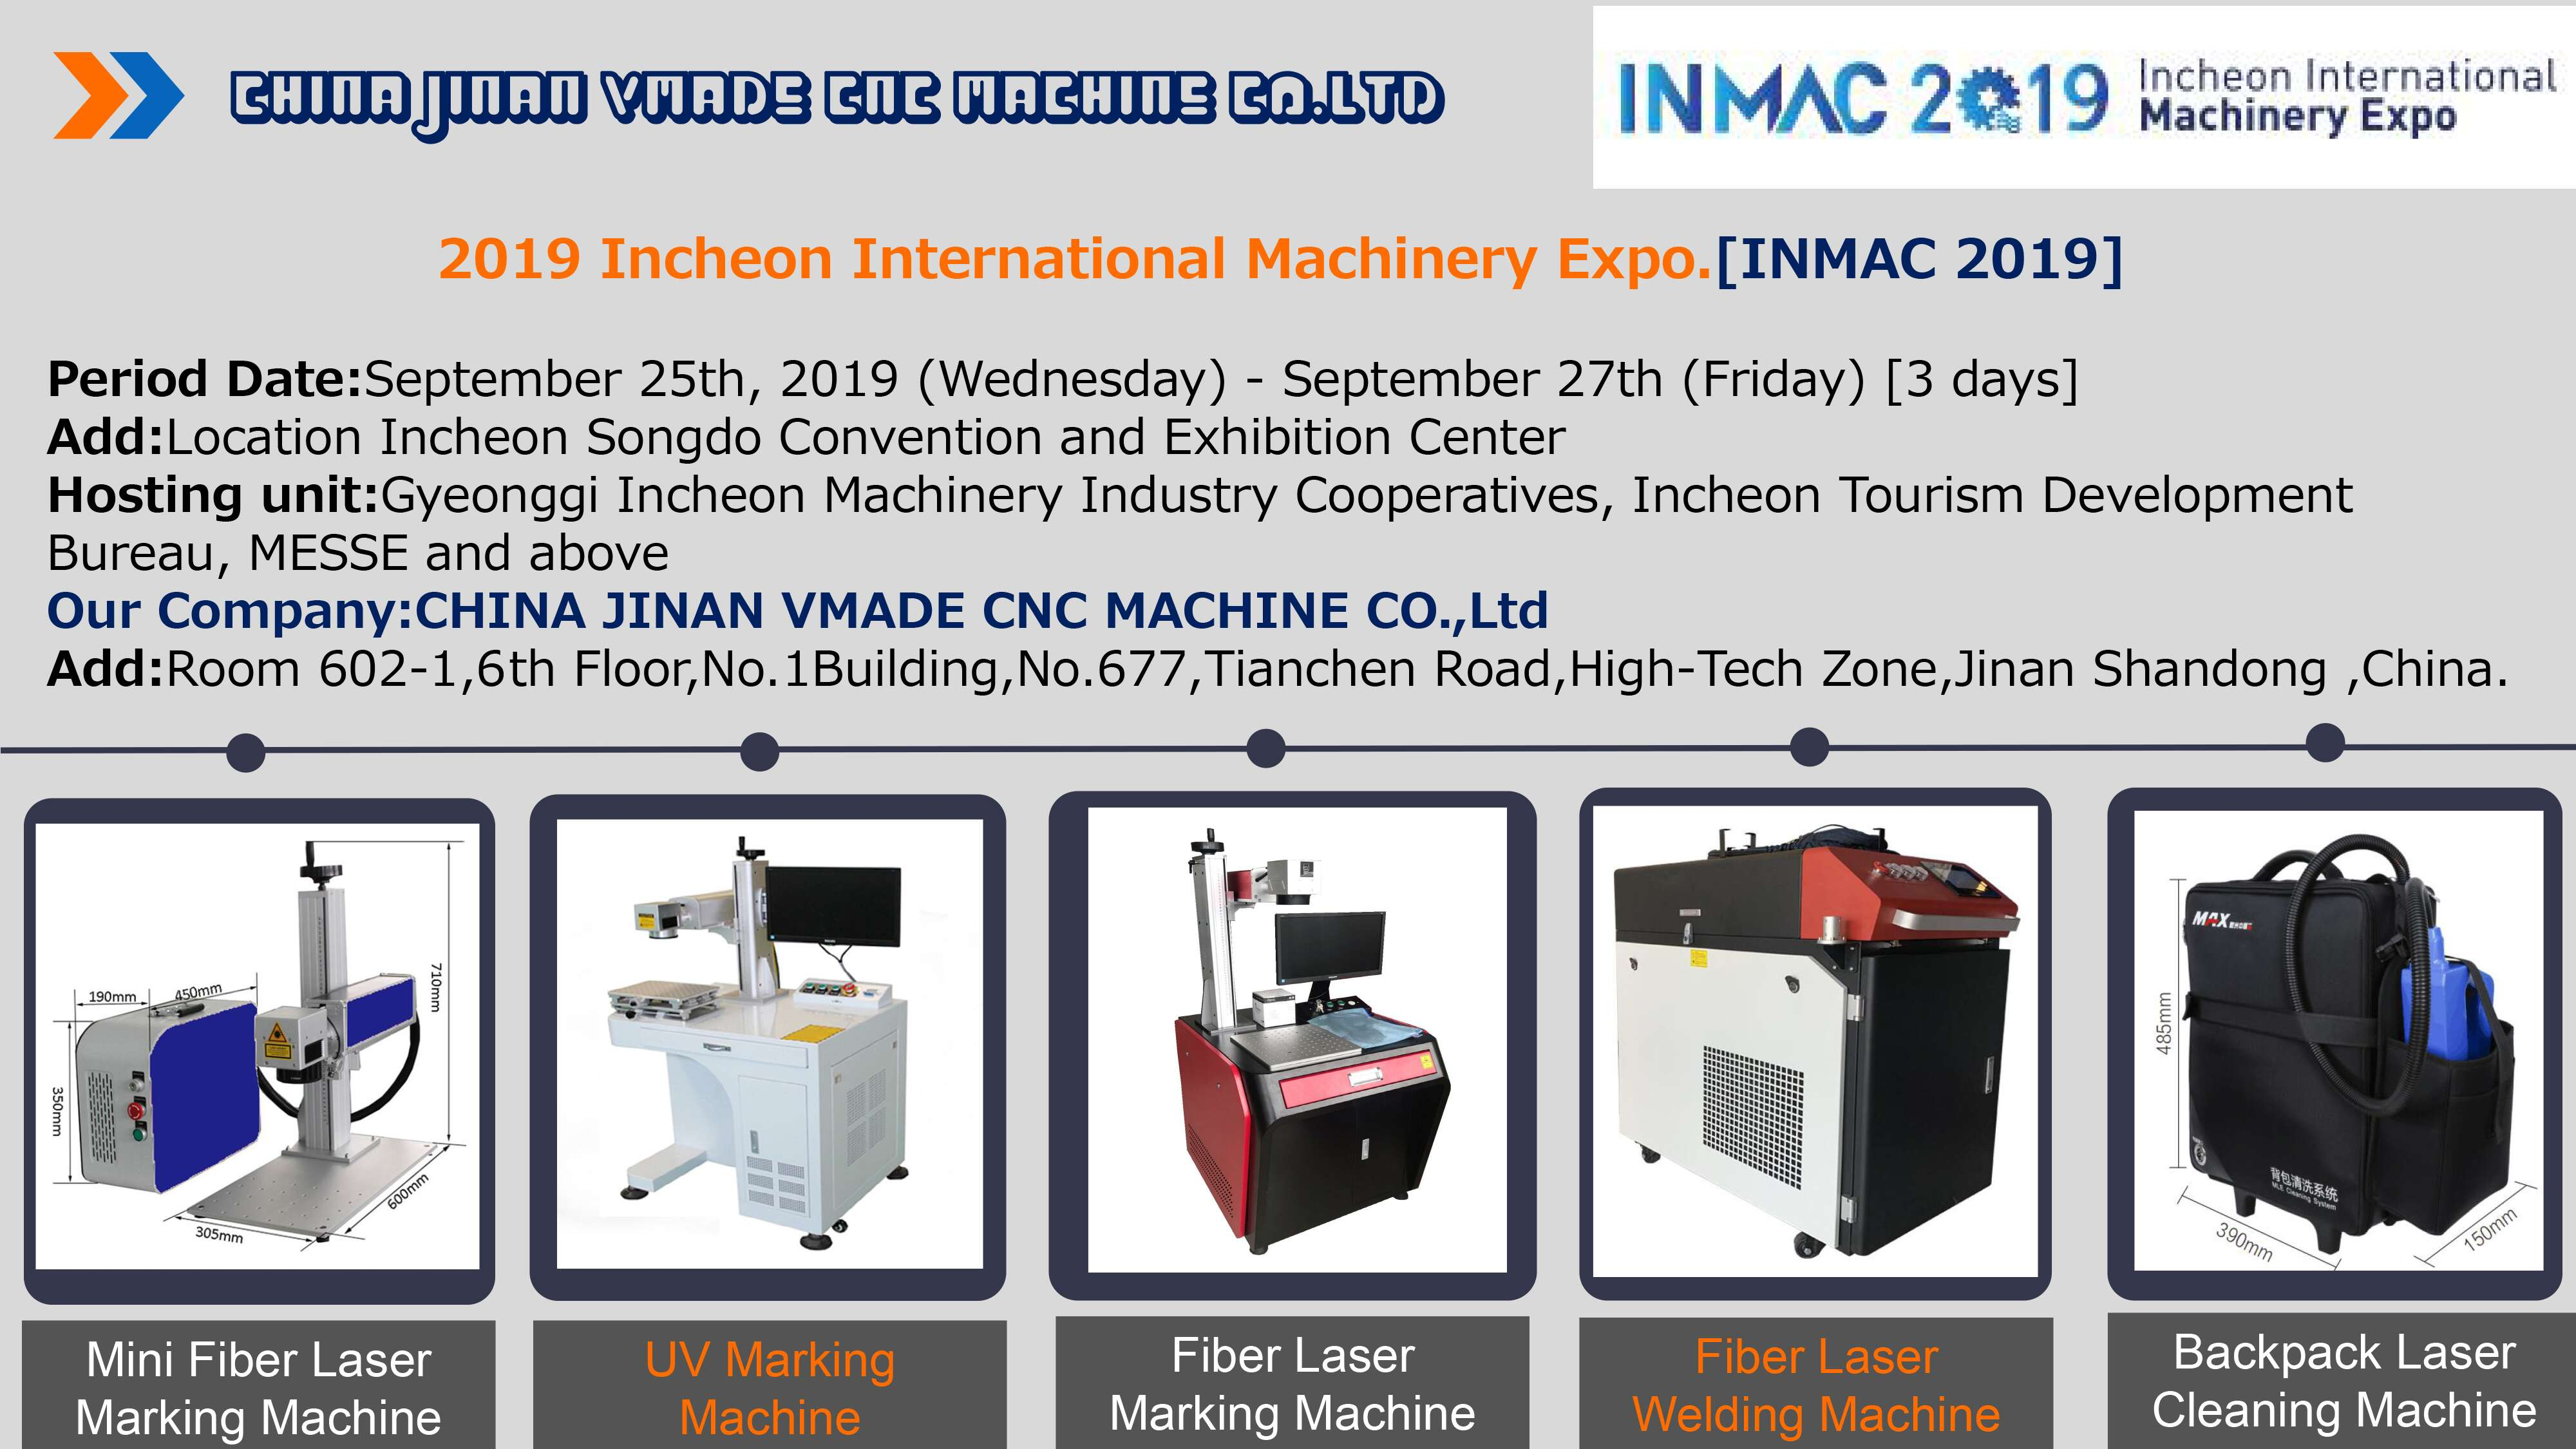 LASER MACHINE EXPO - LASER MARKING LASER WELDING LASER CLEANING